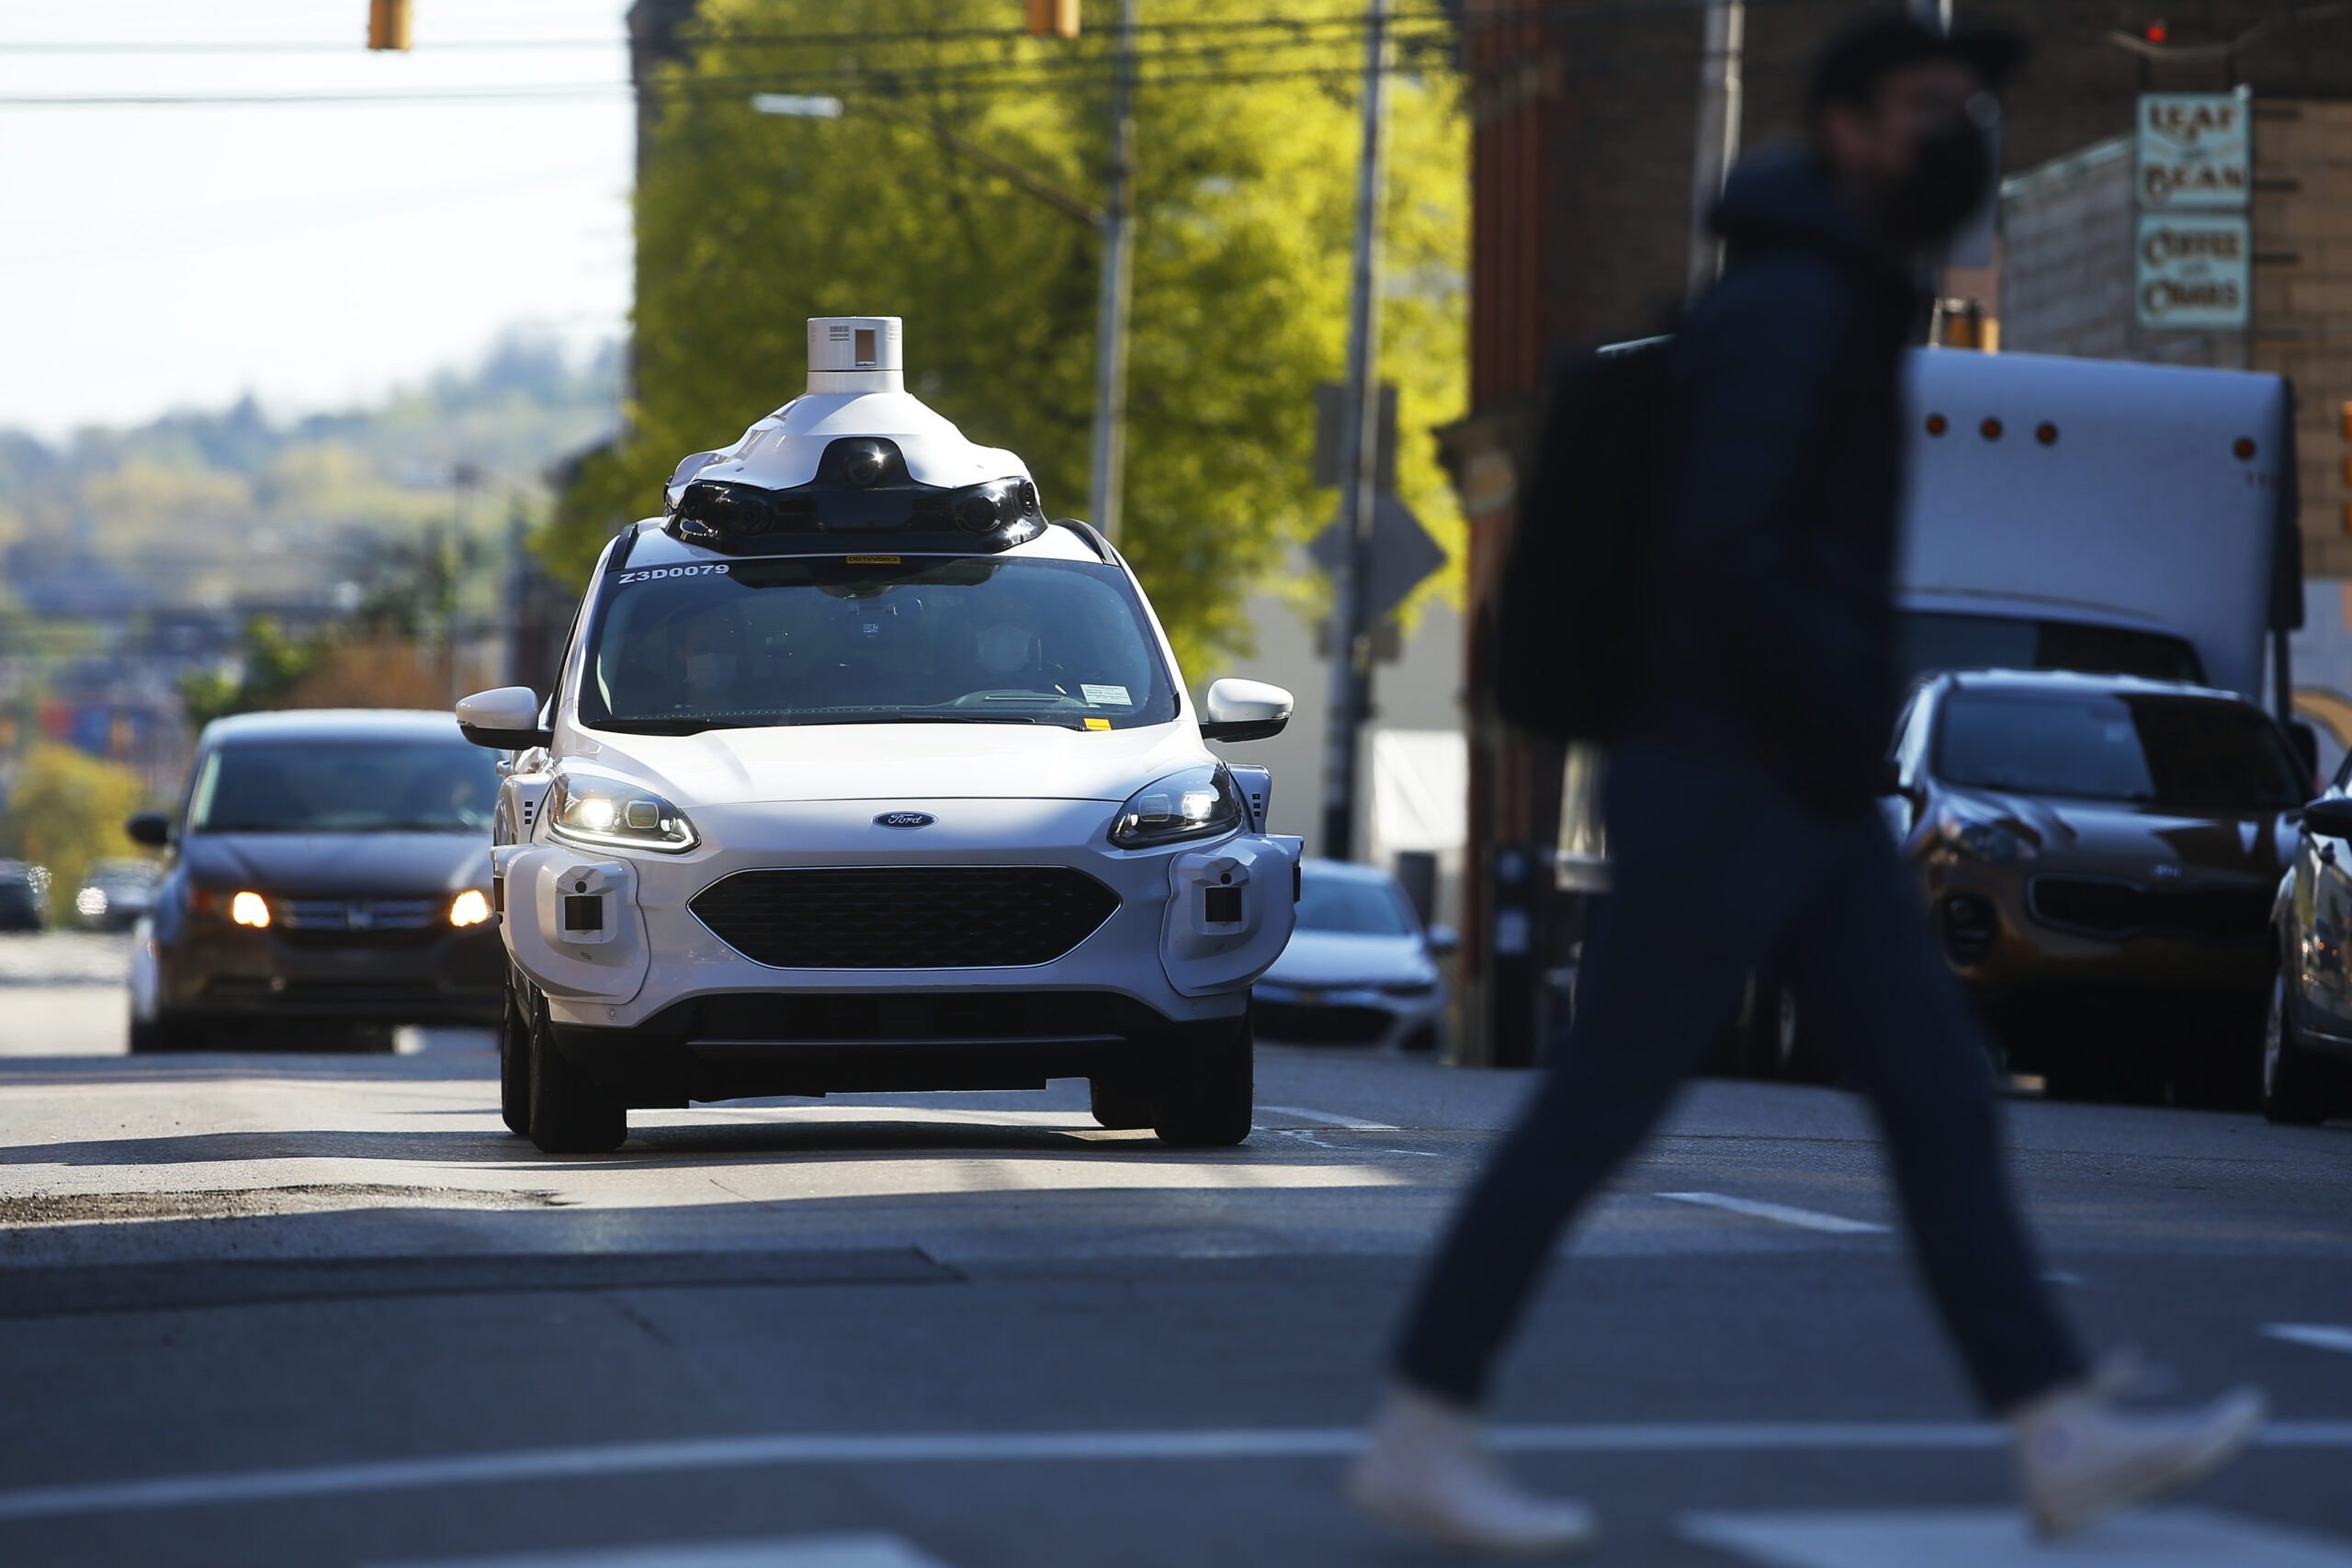 Argo's new lidar sensor could help Ford, VW deploy self-driving vehicles at scale – TechCrunch